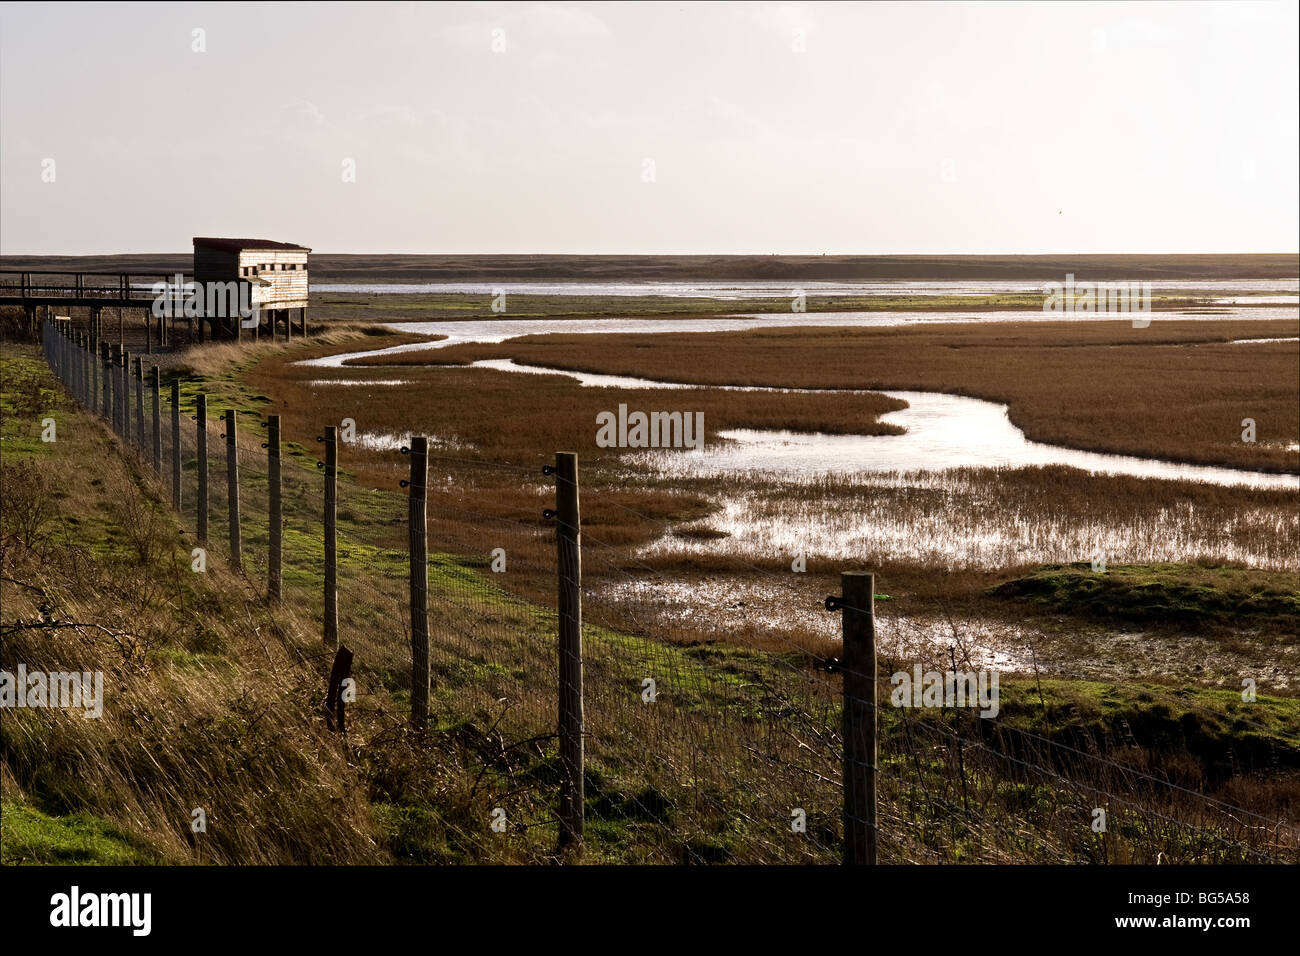 A birdwatching hide at Rye Harbour Nature Reserve in East Sussex.  Photo by Gordon Scammell - Stock Image